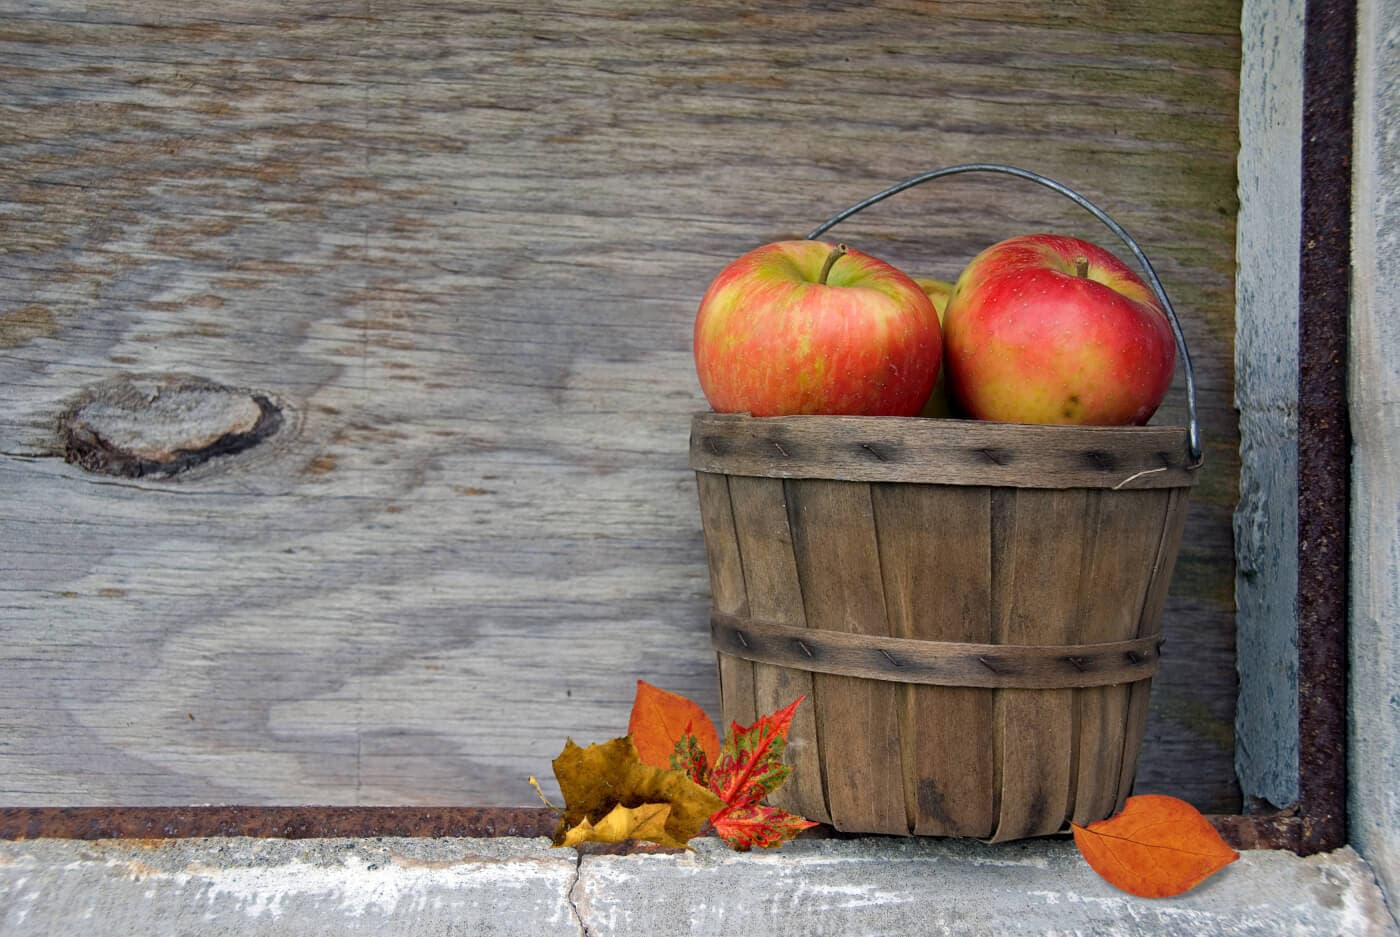 Autumn apples with leaves